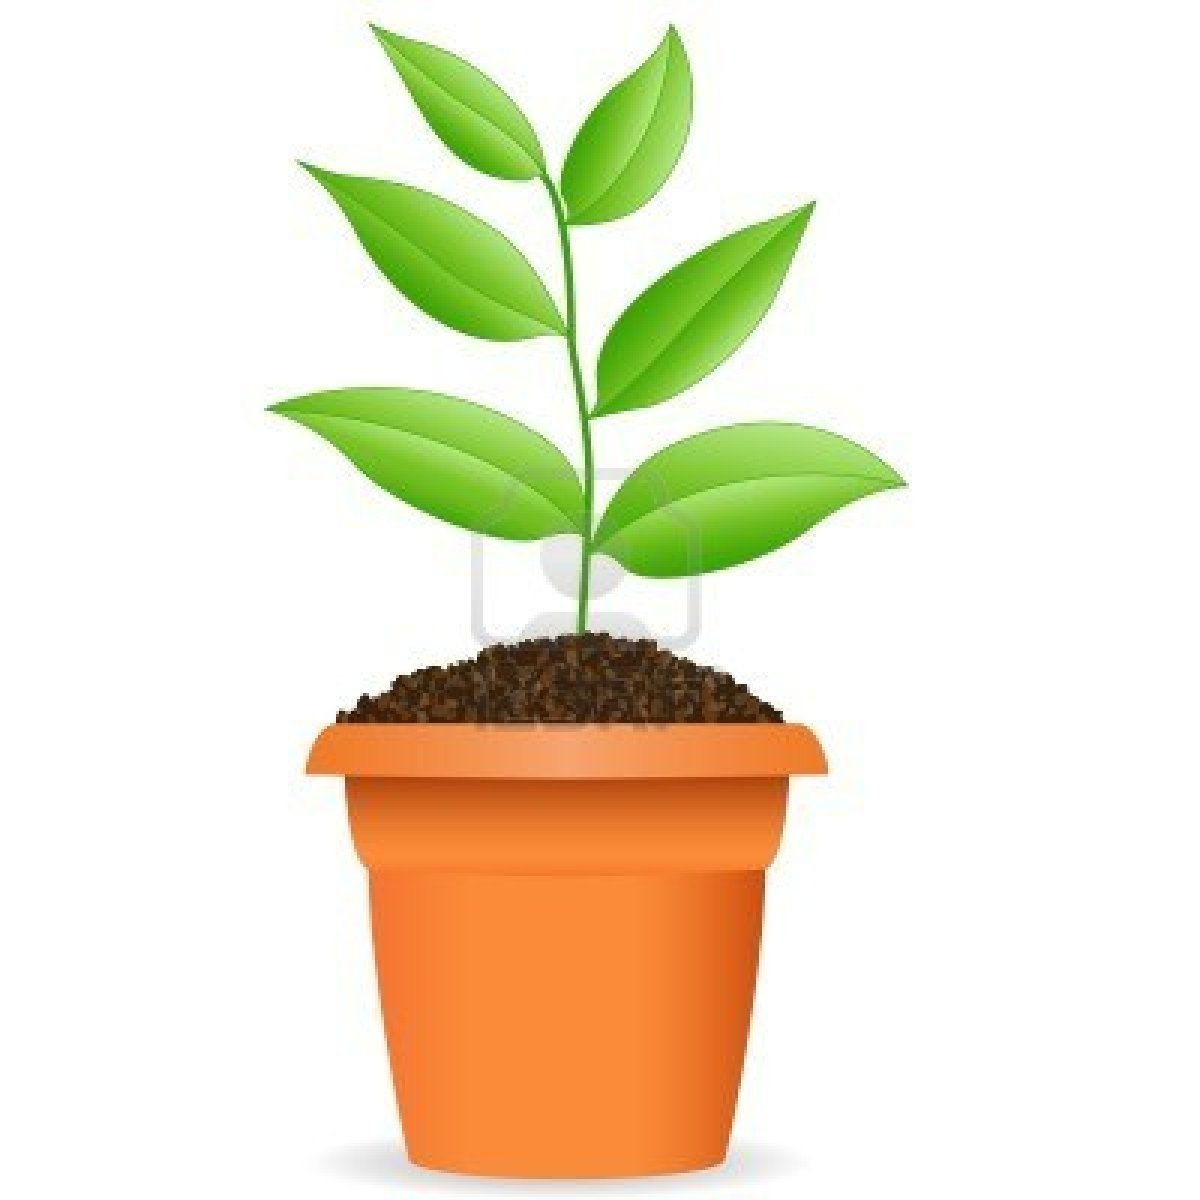 The plant in the pot philippine theo law gee for Plante en pot